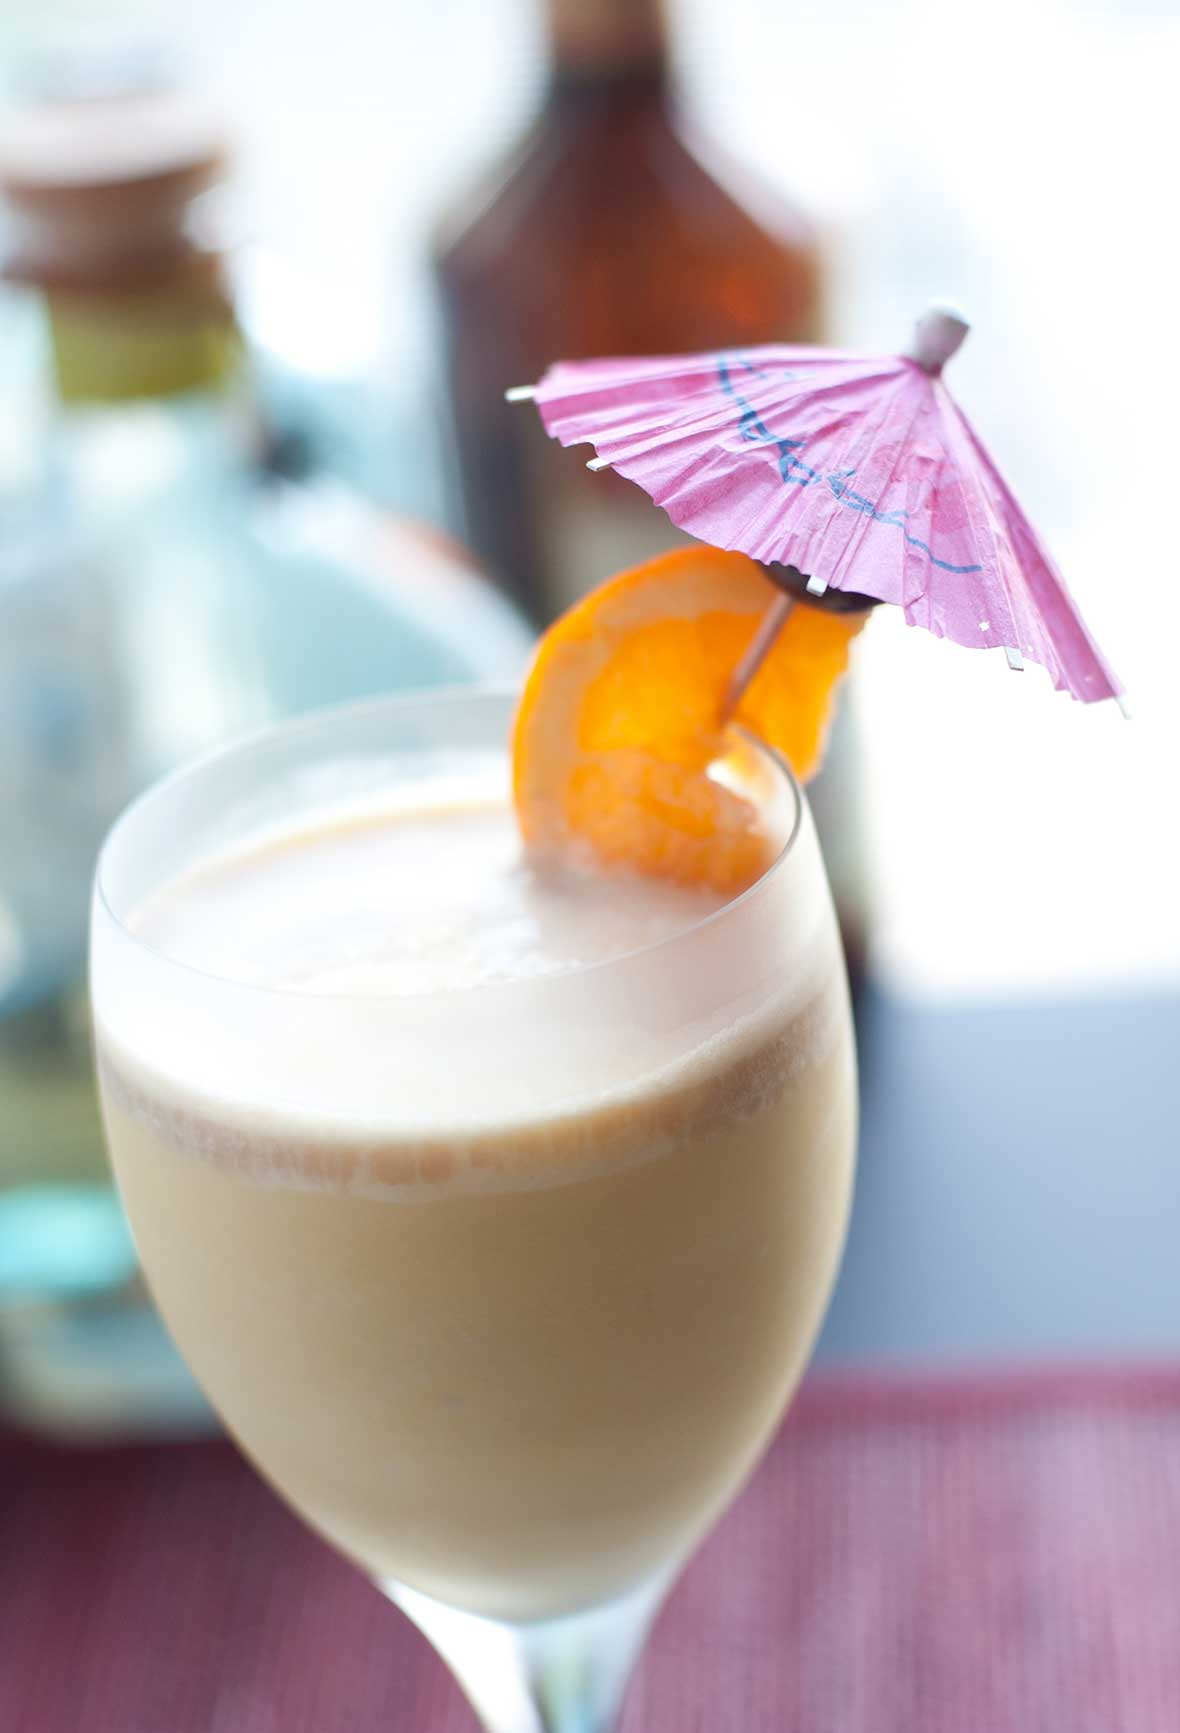 A wine glass filled with frozen Long Island iced tea, garnished with an orange slice on an umbrella.